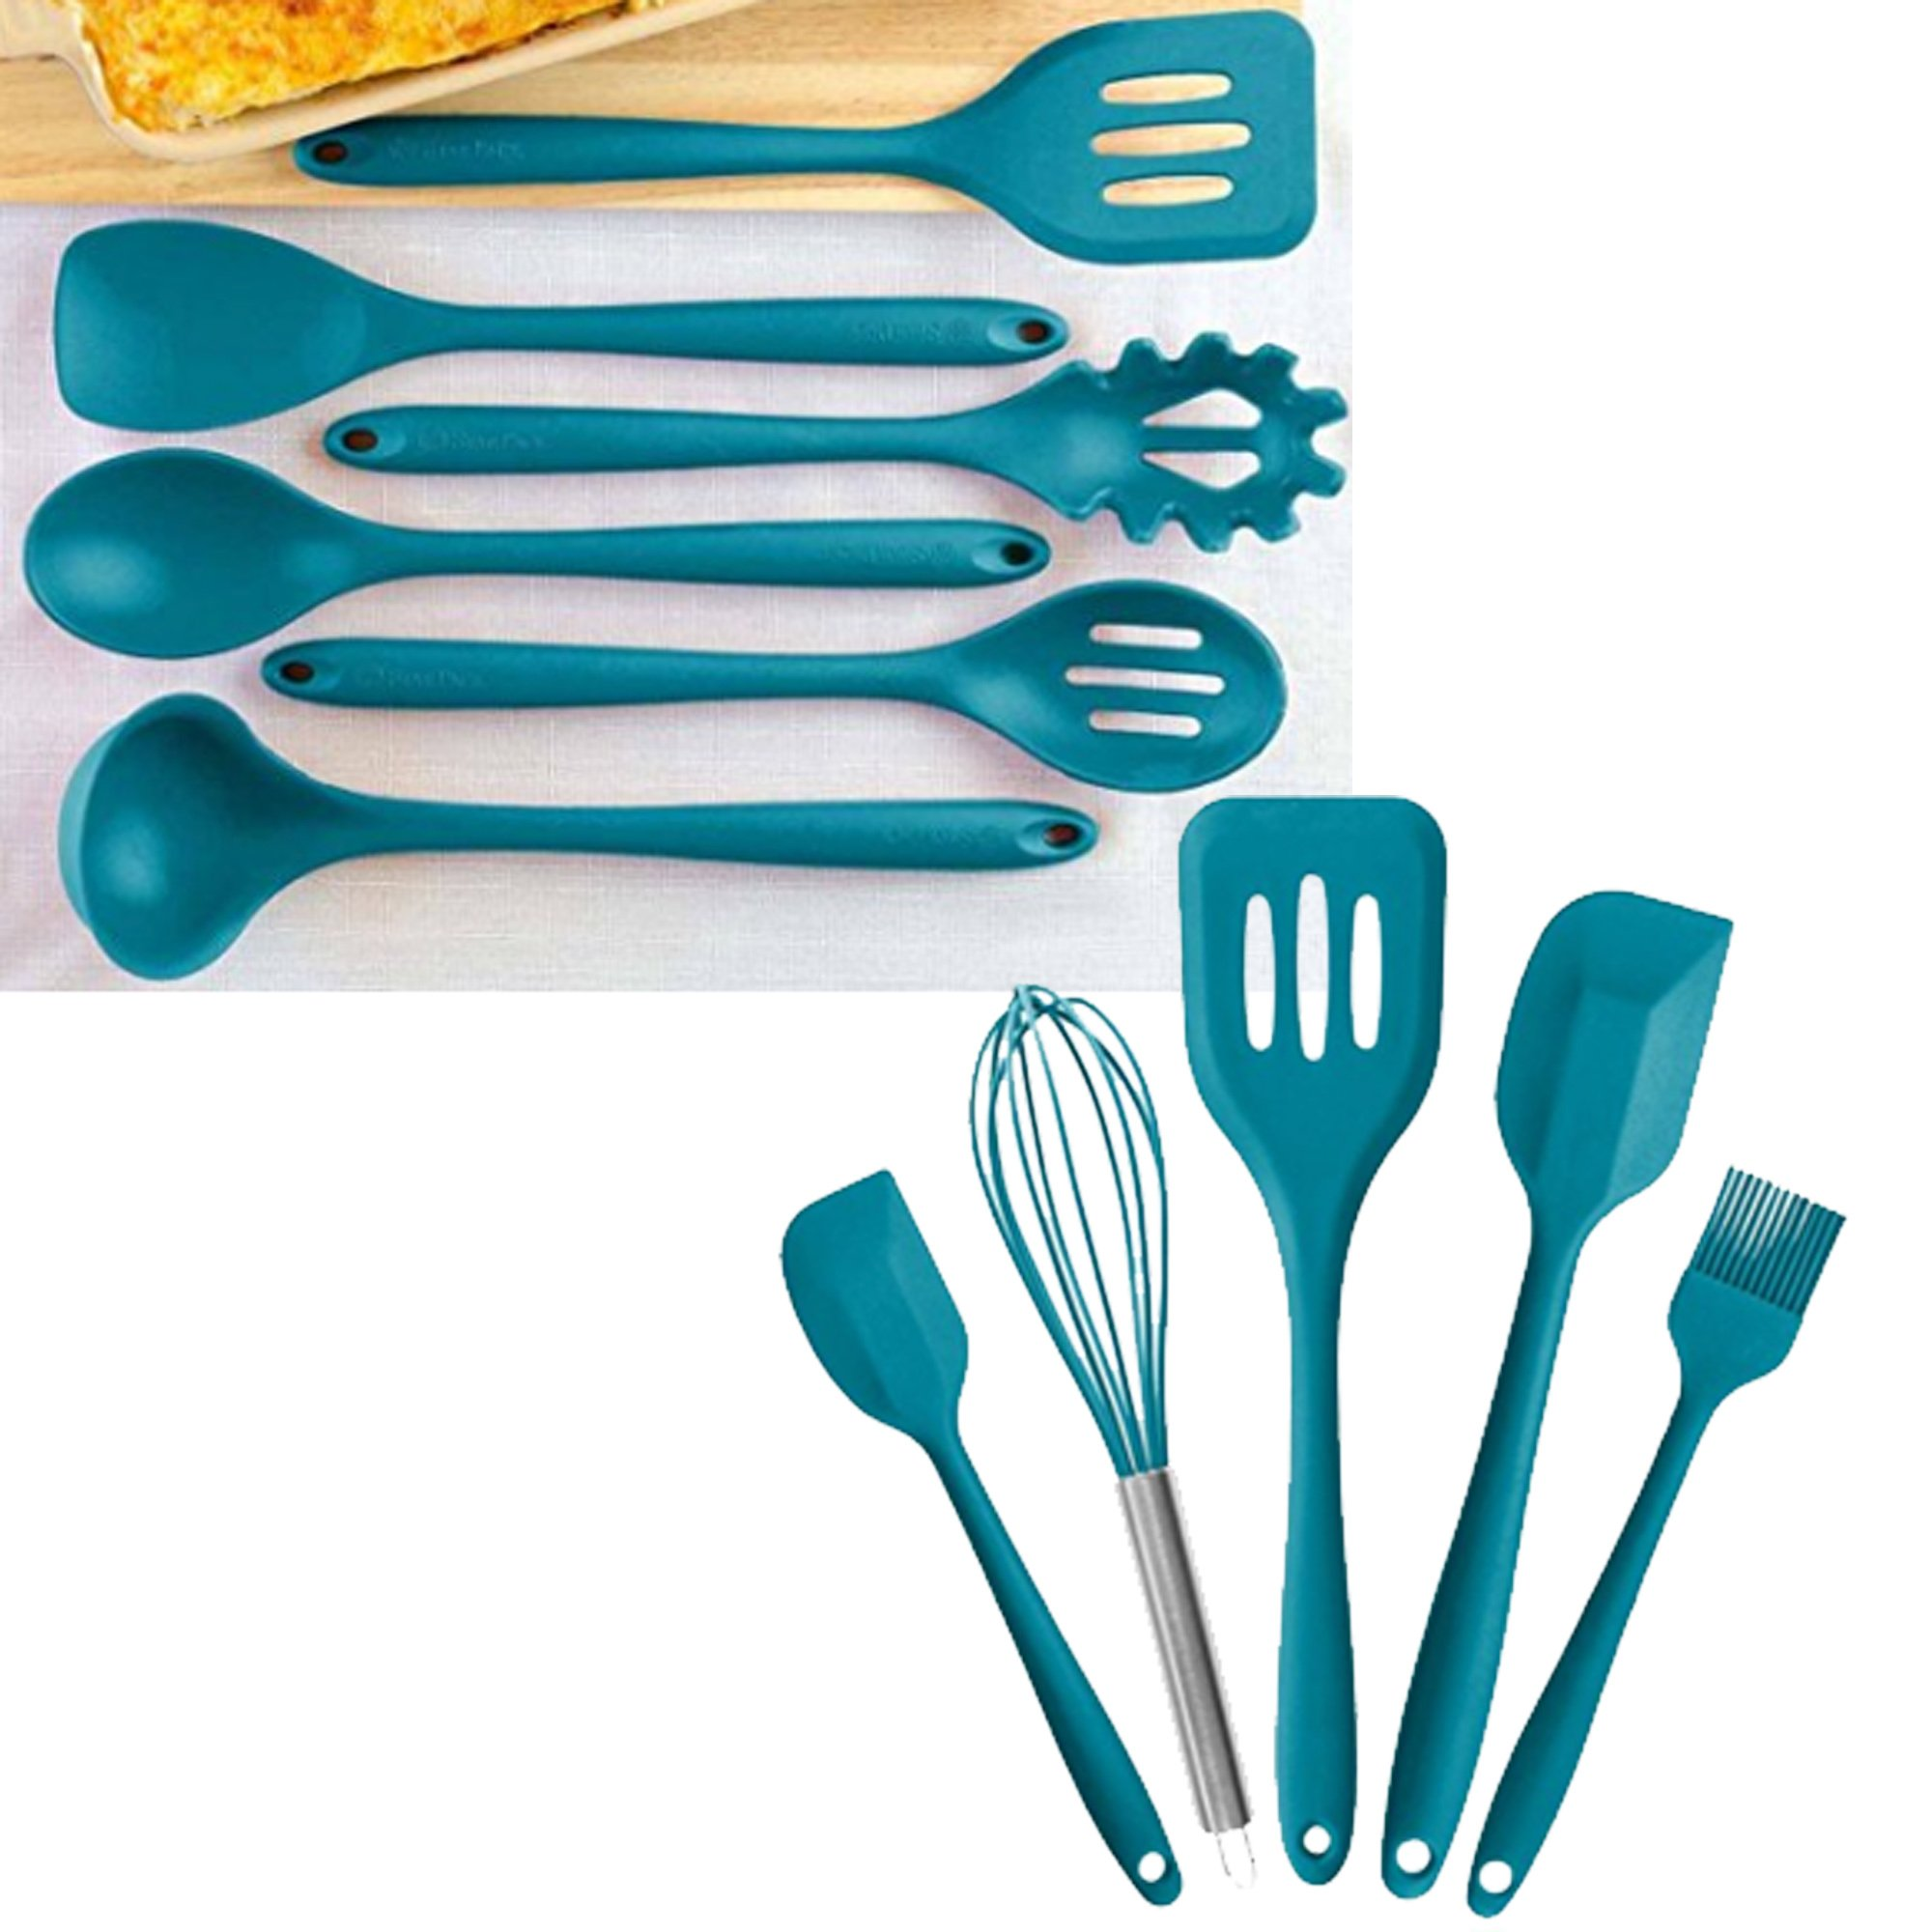 StarPack Value Bundle 0027-6-Pc XL Silicone Kitchen Utensils (13.5'') and 5-Pc Silicone Kitchen Utensils (10.6'') - Teal Blue by StarPack Home